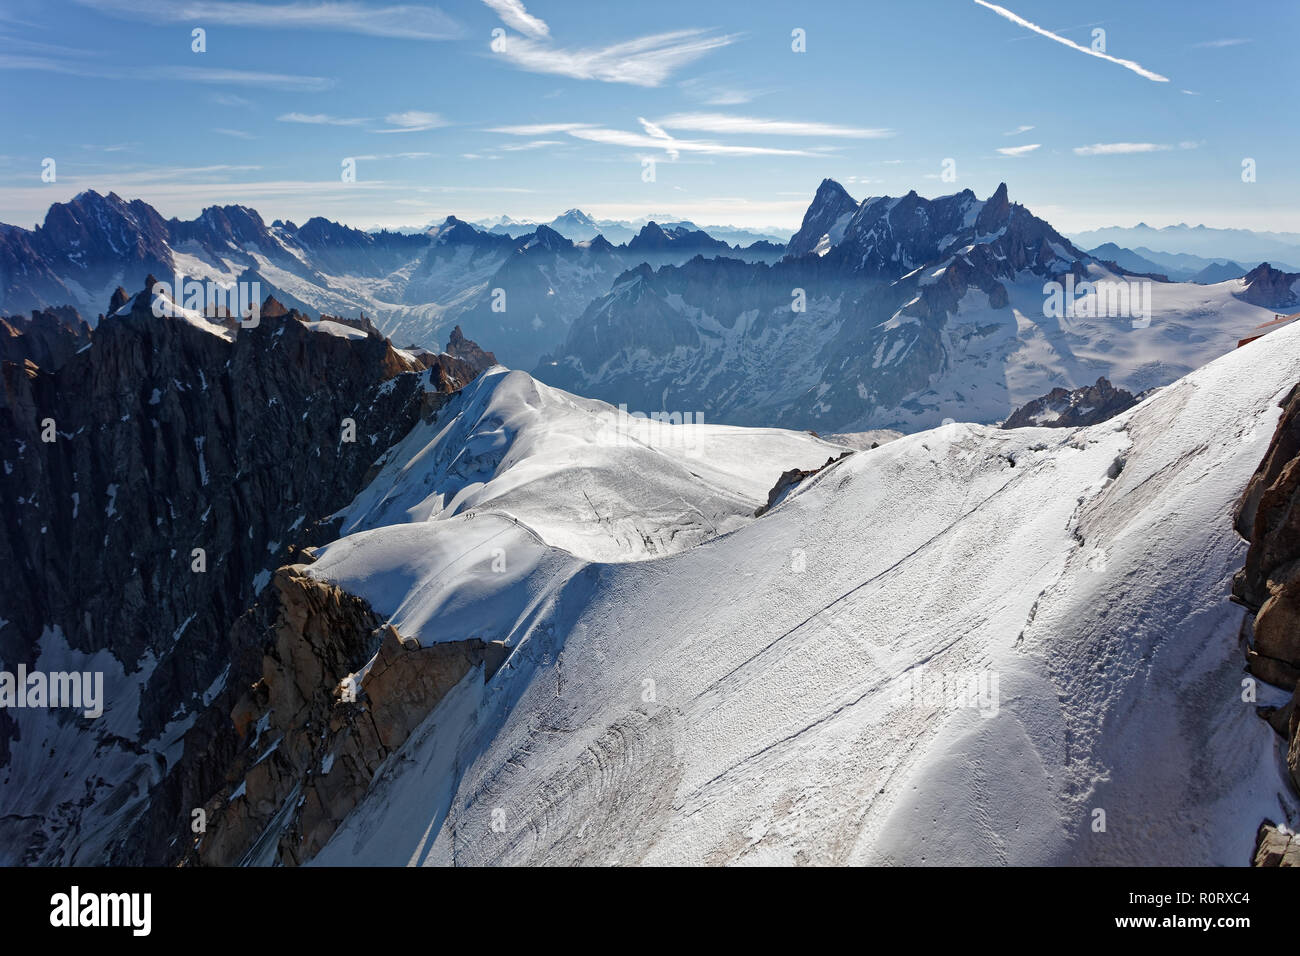 Chamonix, south-east France, Auvergne-Rhône-Alpes. Climbers heading for Mont Blanc. Descending from Aiguille du Midi cable car station towards sunny s Stock Photo